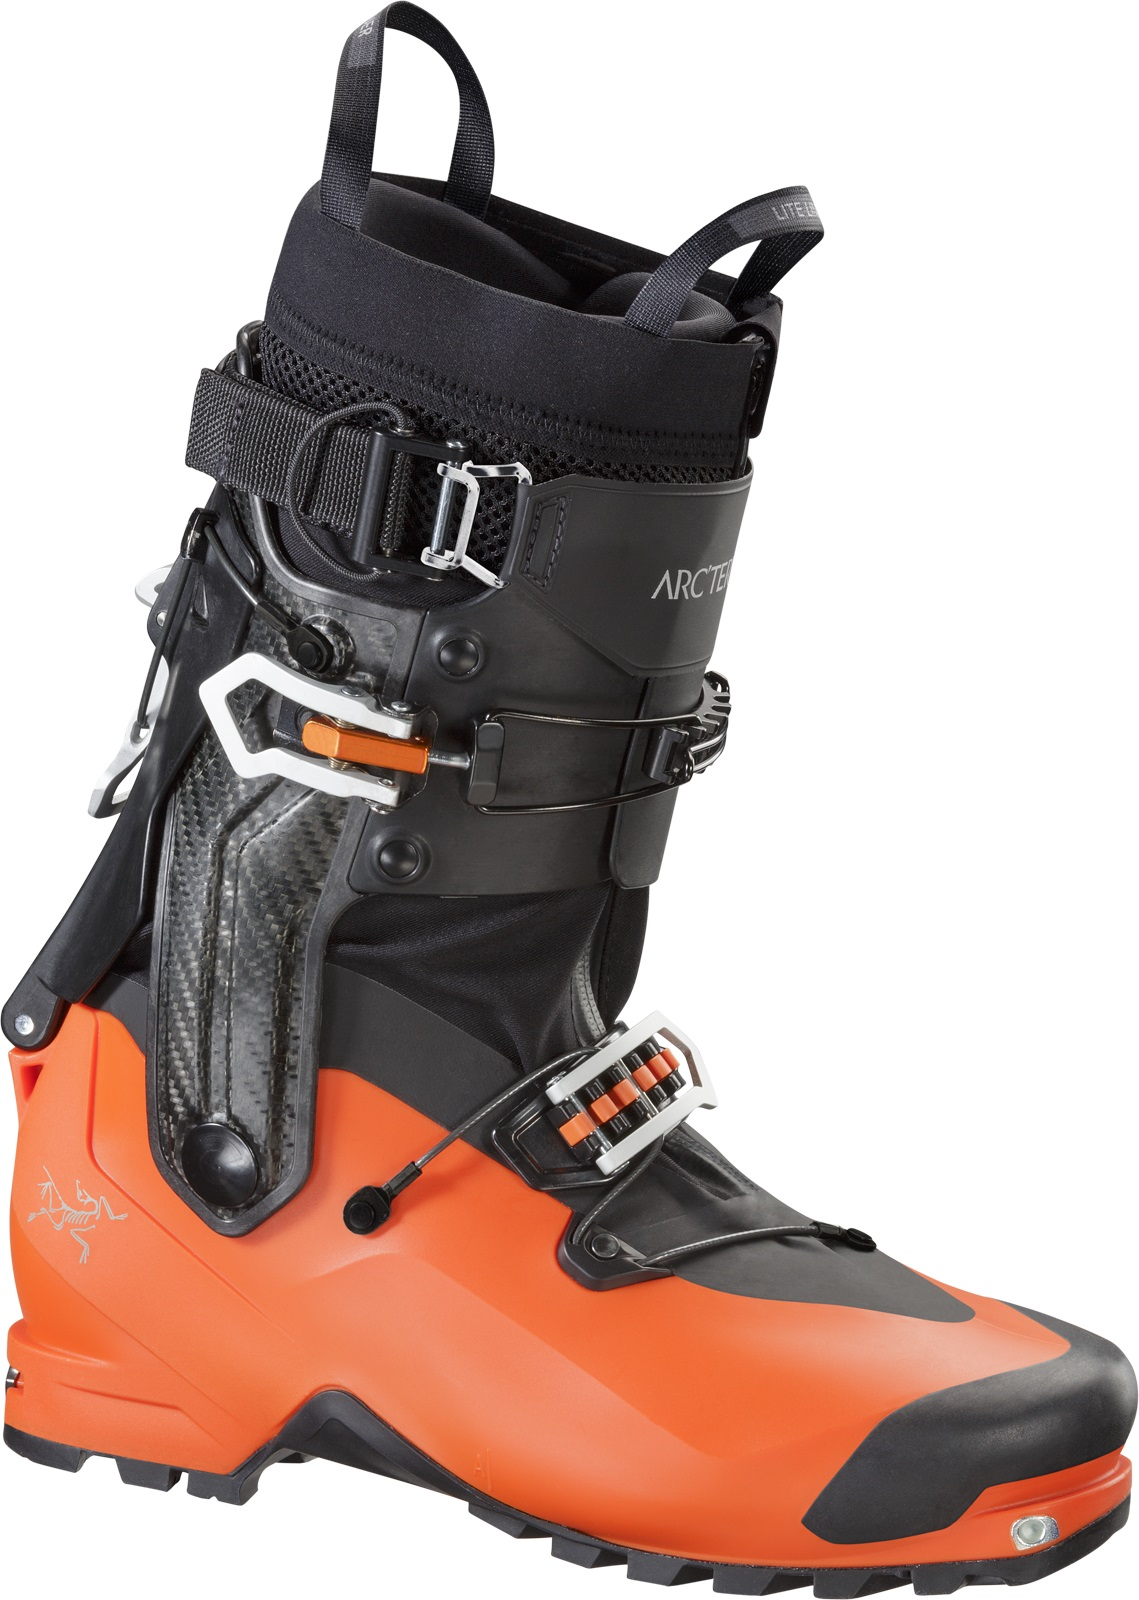 Procline Carbon Lite Ski Mountaineering Boot